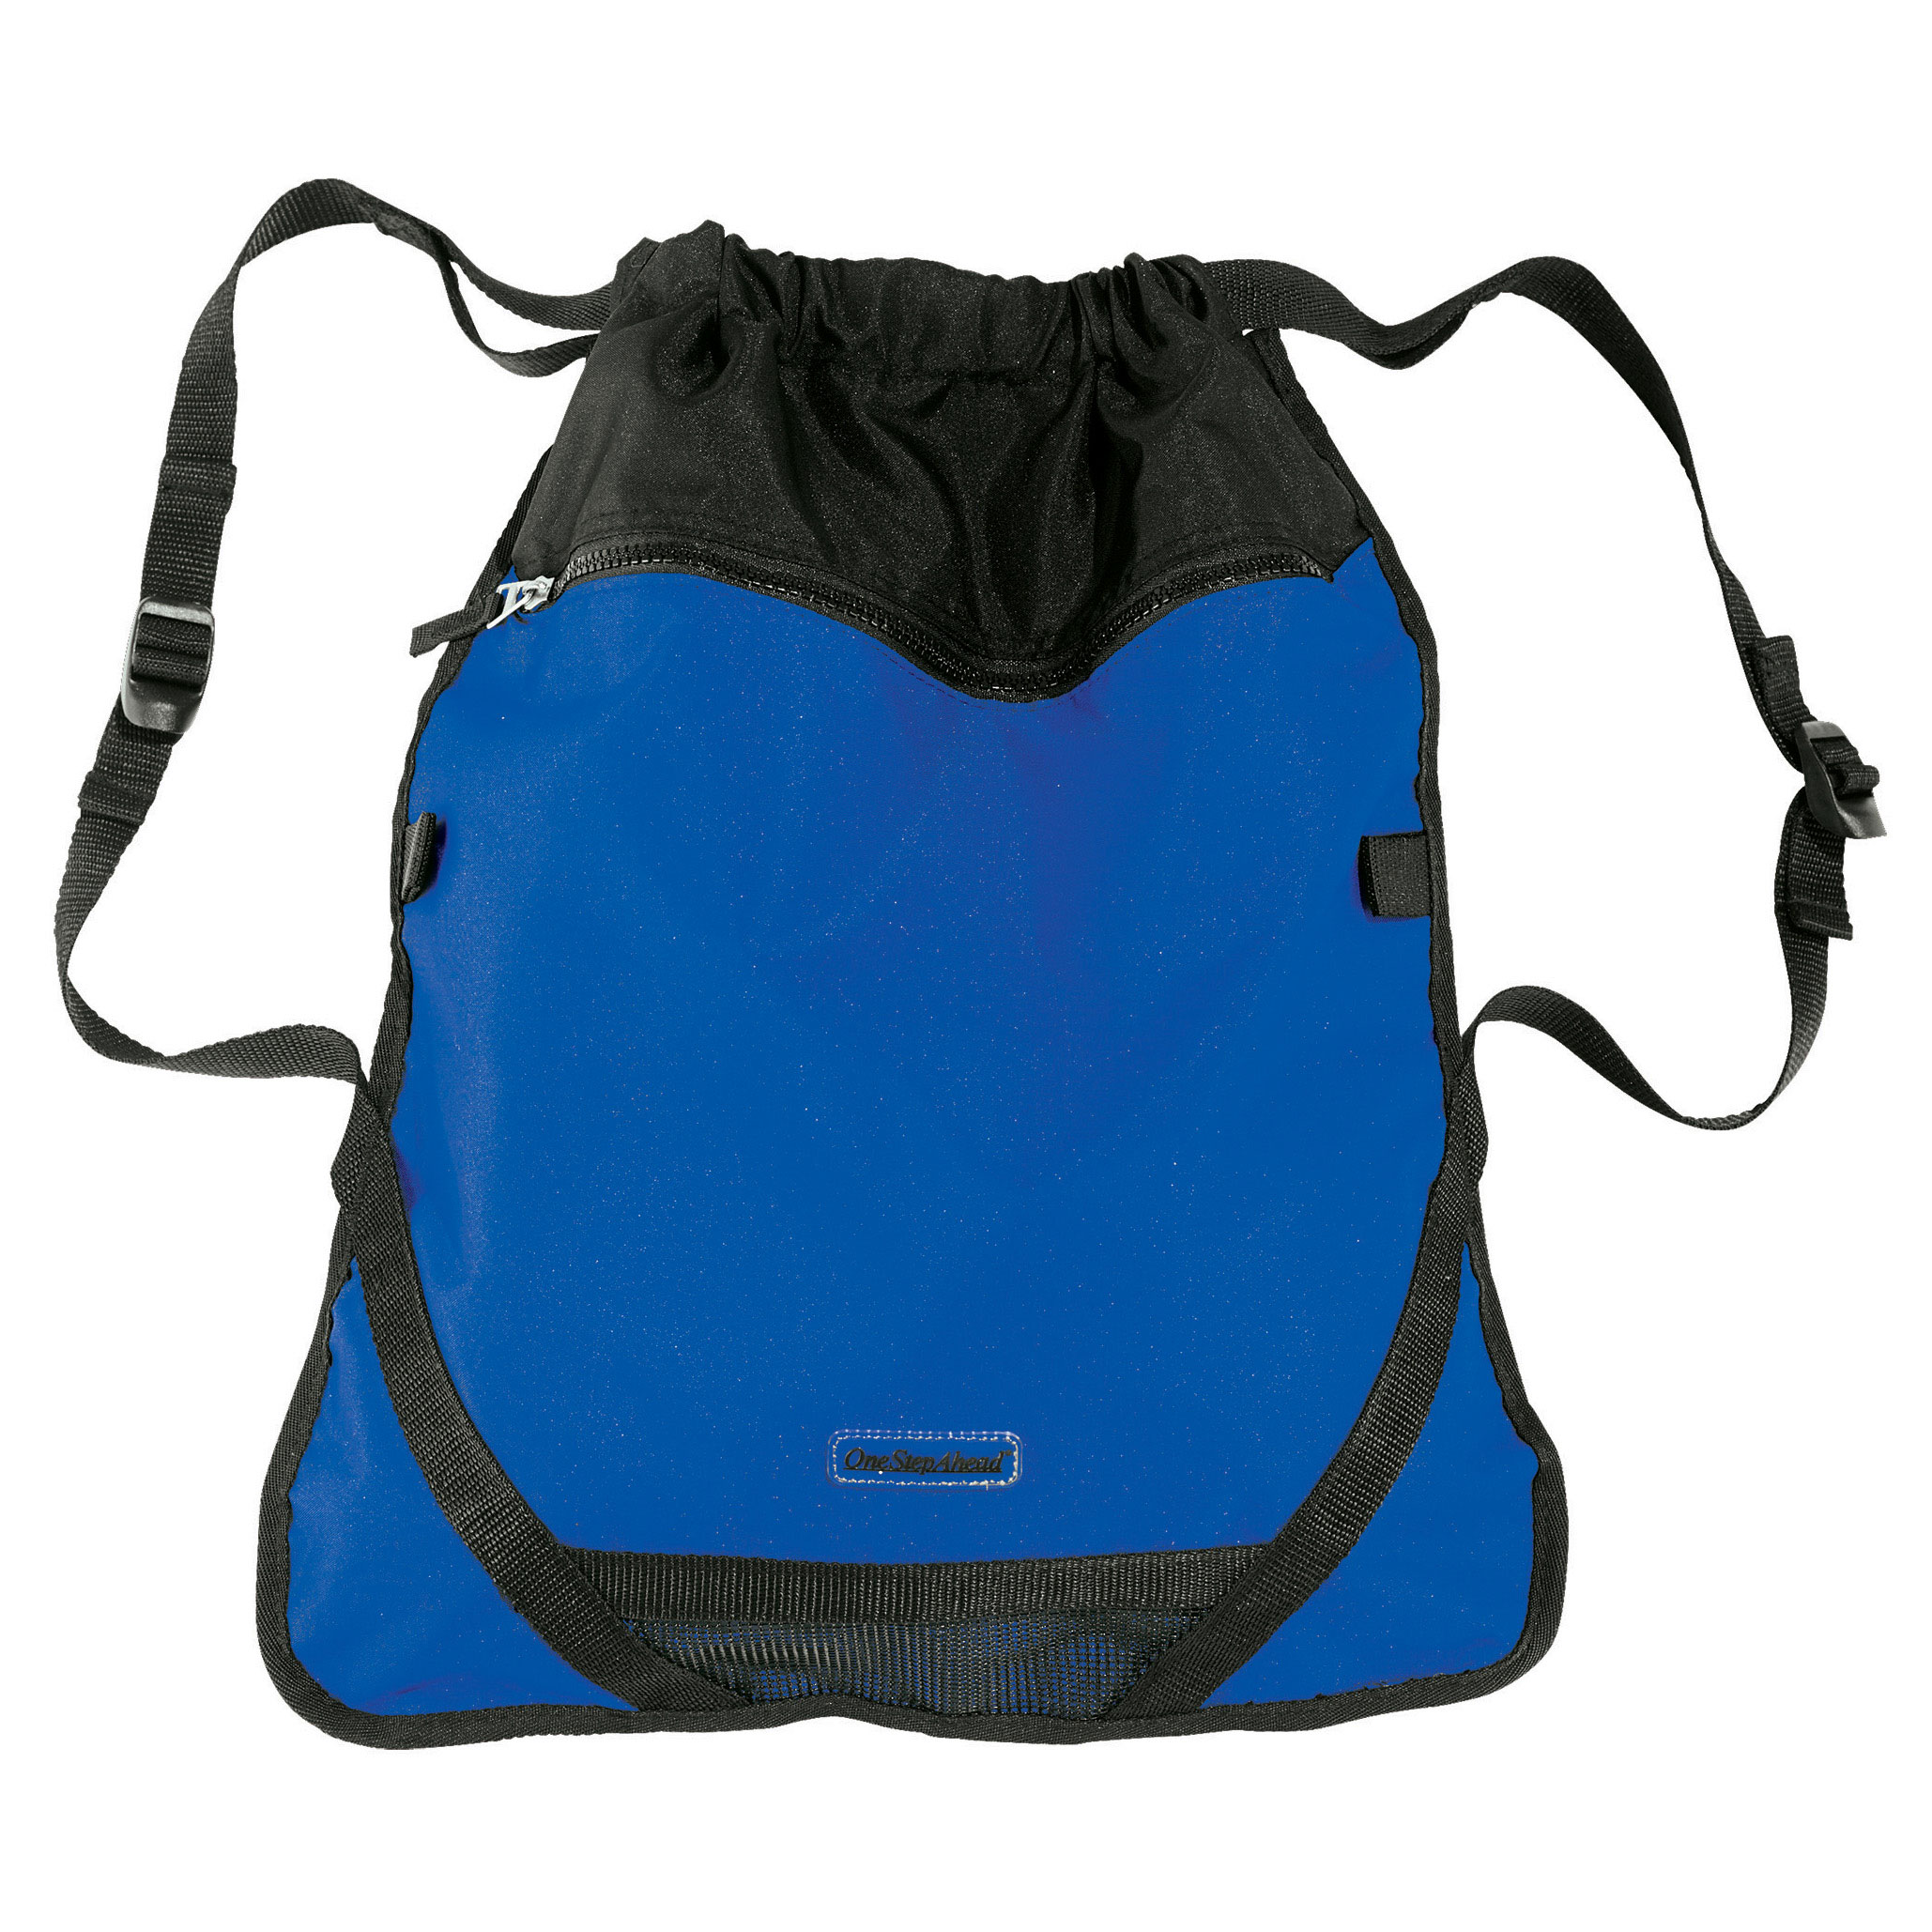 One Step Ahead Children's Blue Athletic Backpack - Lightweight ...